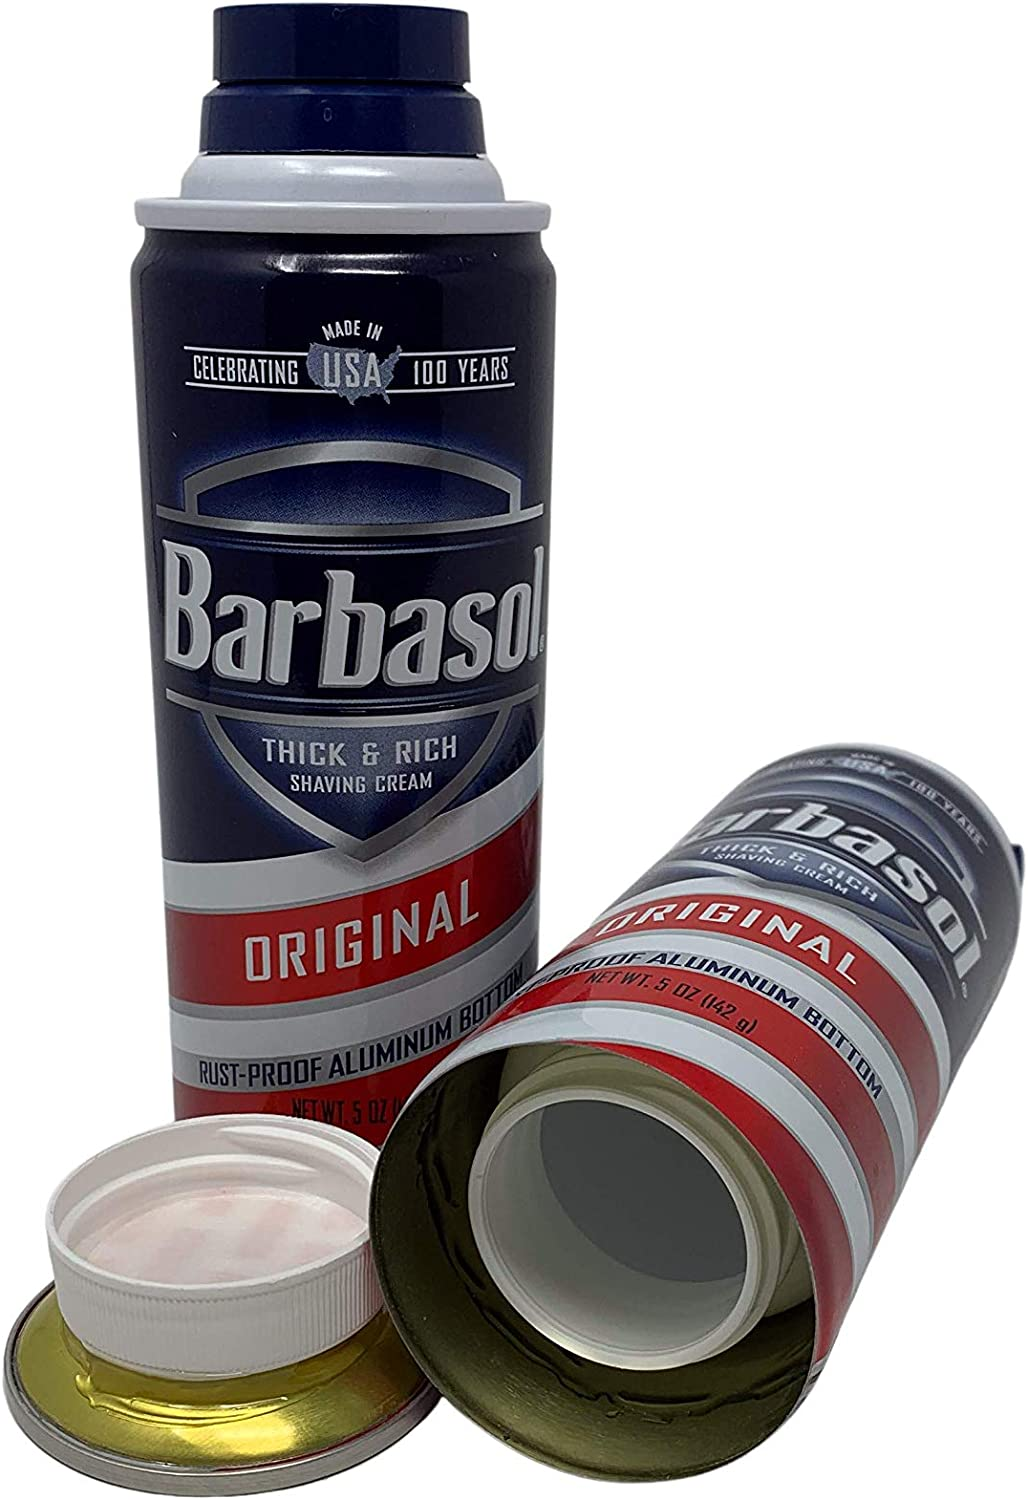 Shaving Cream Diversion Safe Stash Can Hidden Compartment Container for Hiding Money, Jewelry, and Other Valuables